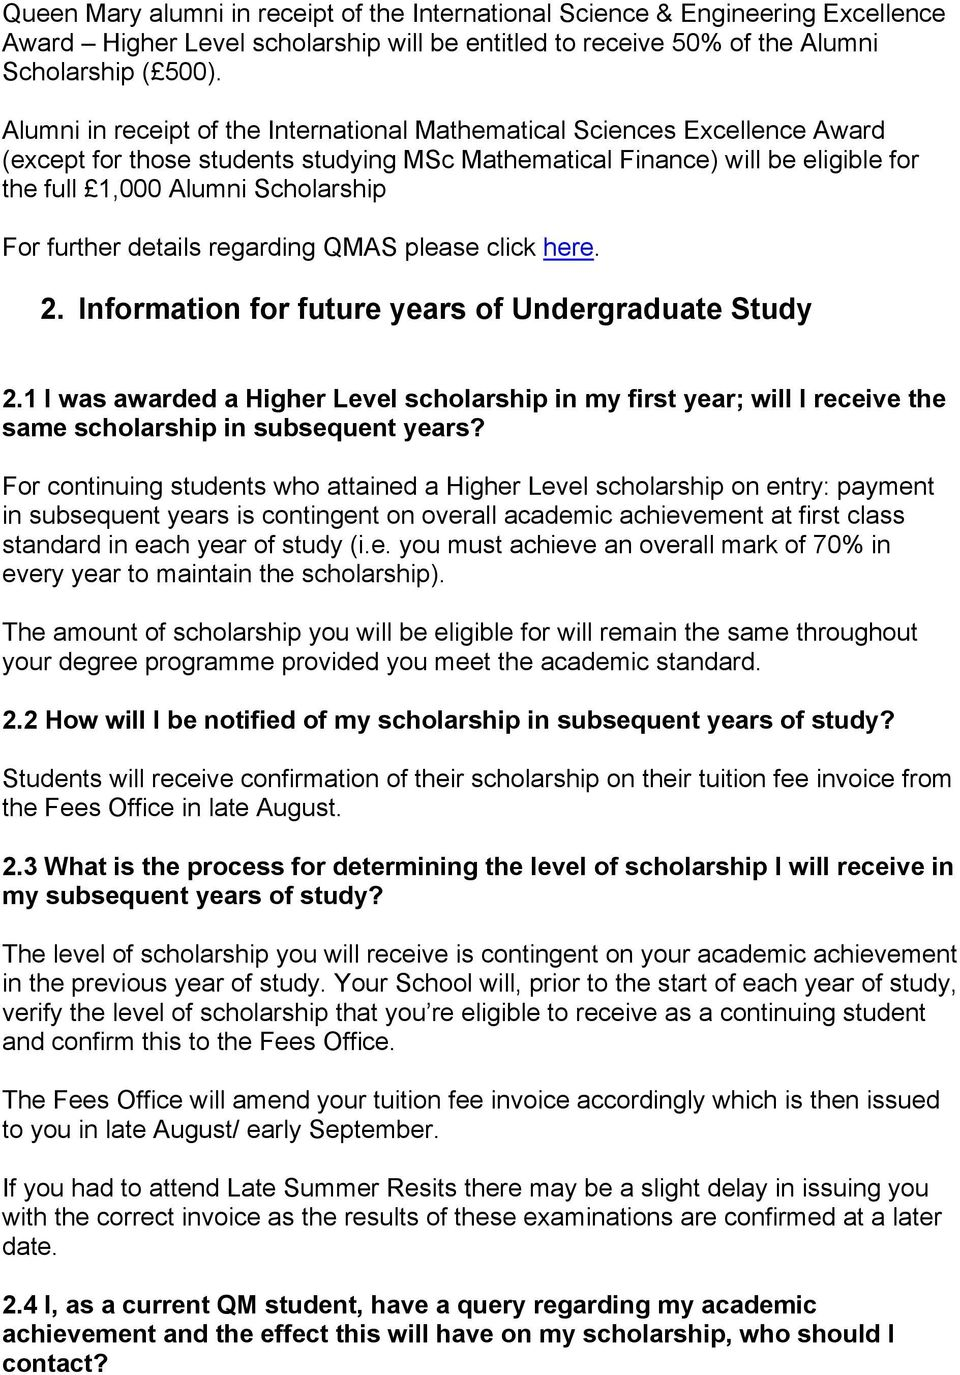 details regarding QMAS please click here. 2. Information for future years of Undergraduate Study 2.